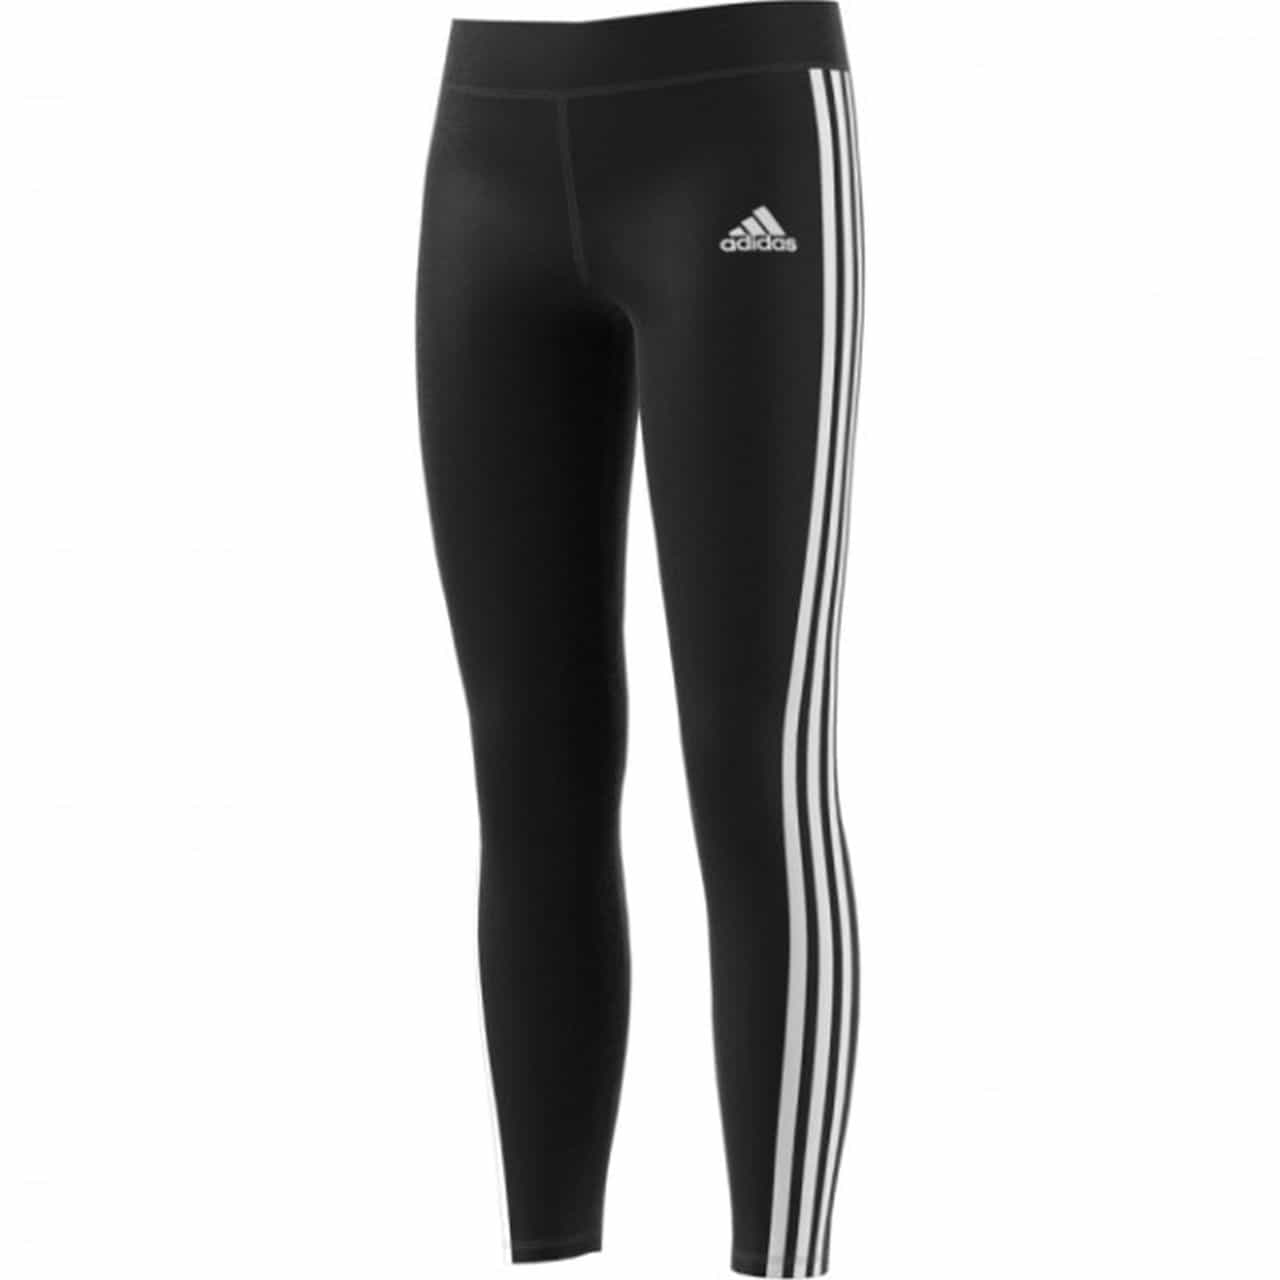 PANTALONI FITNESS ORIGINALI ADIDAS YG GU 3S TIGHT - BQ2907